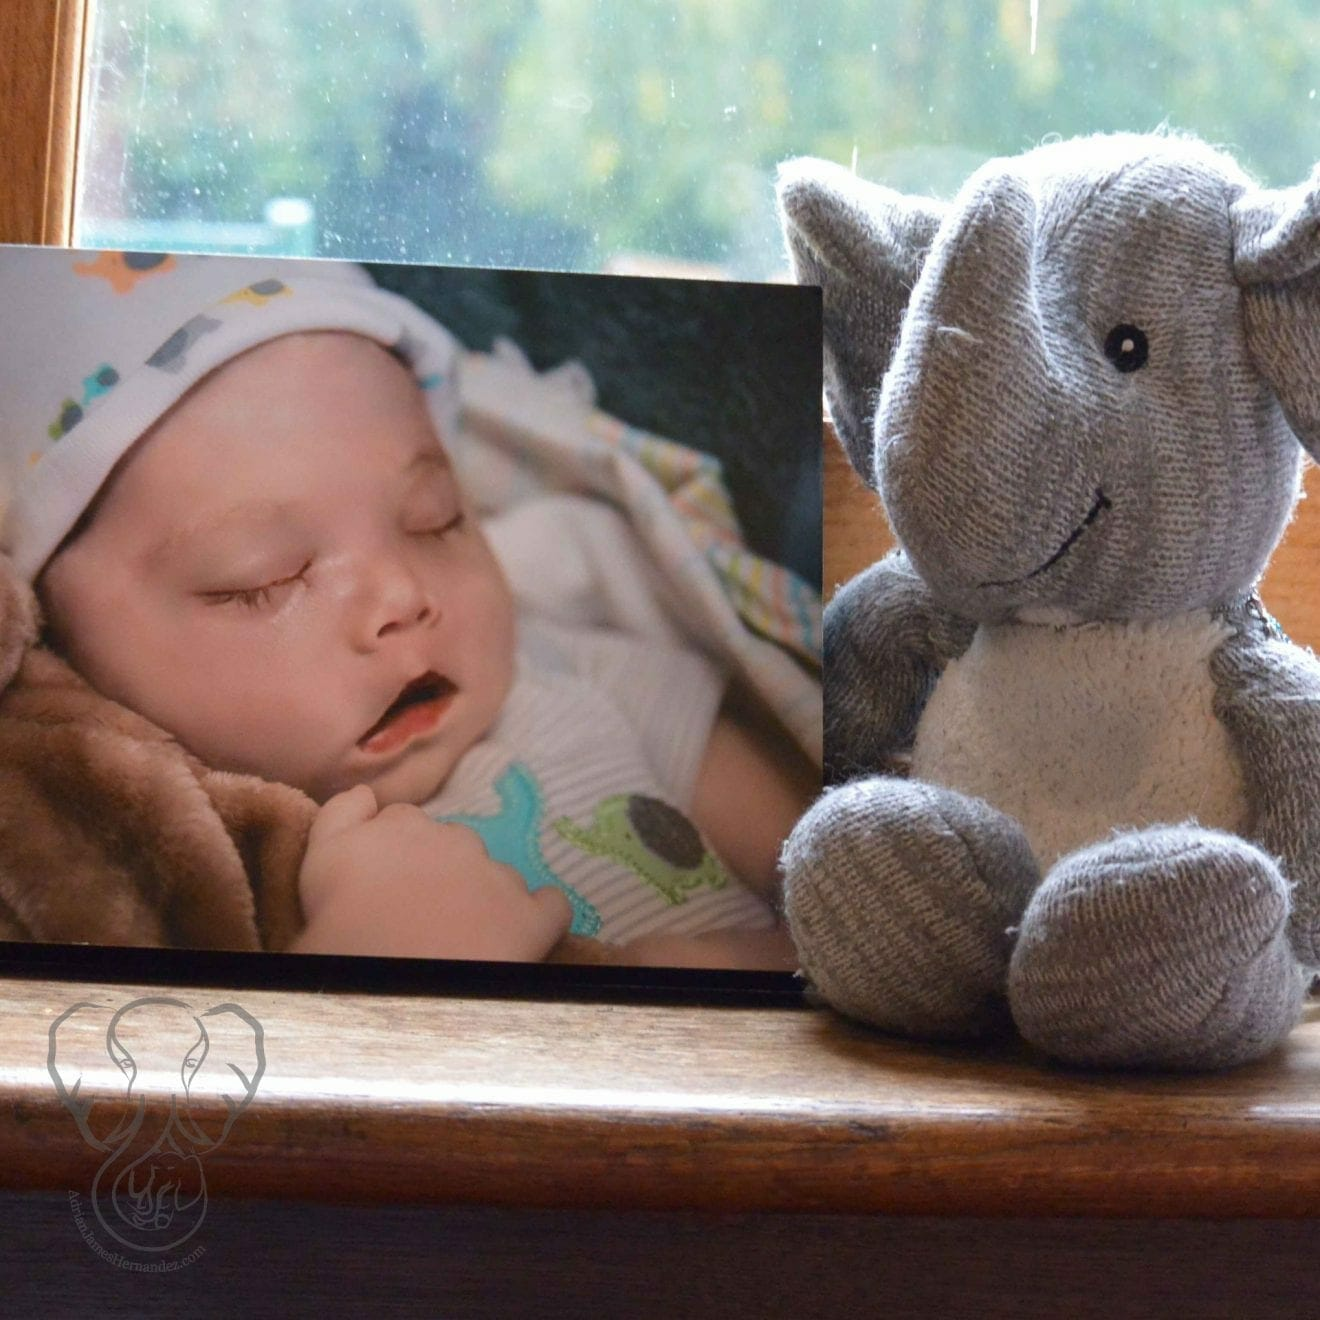 Adrian's Elephant and his photo at St Katharines's Parmoor, Buckinghamshire, England (Miranda Hernandez)